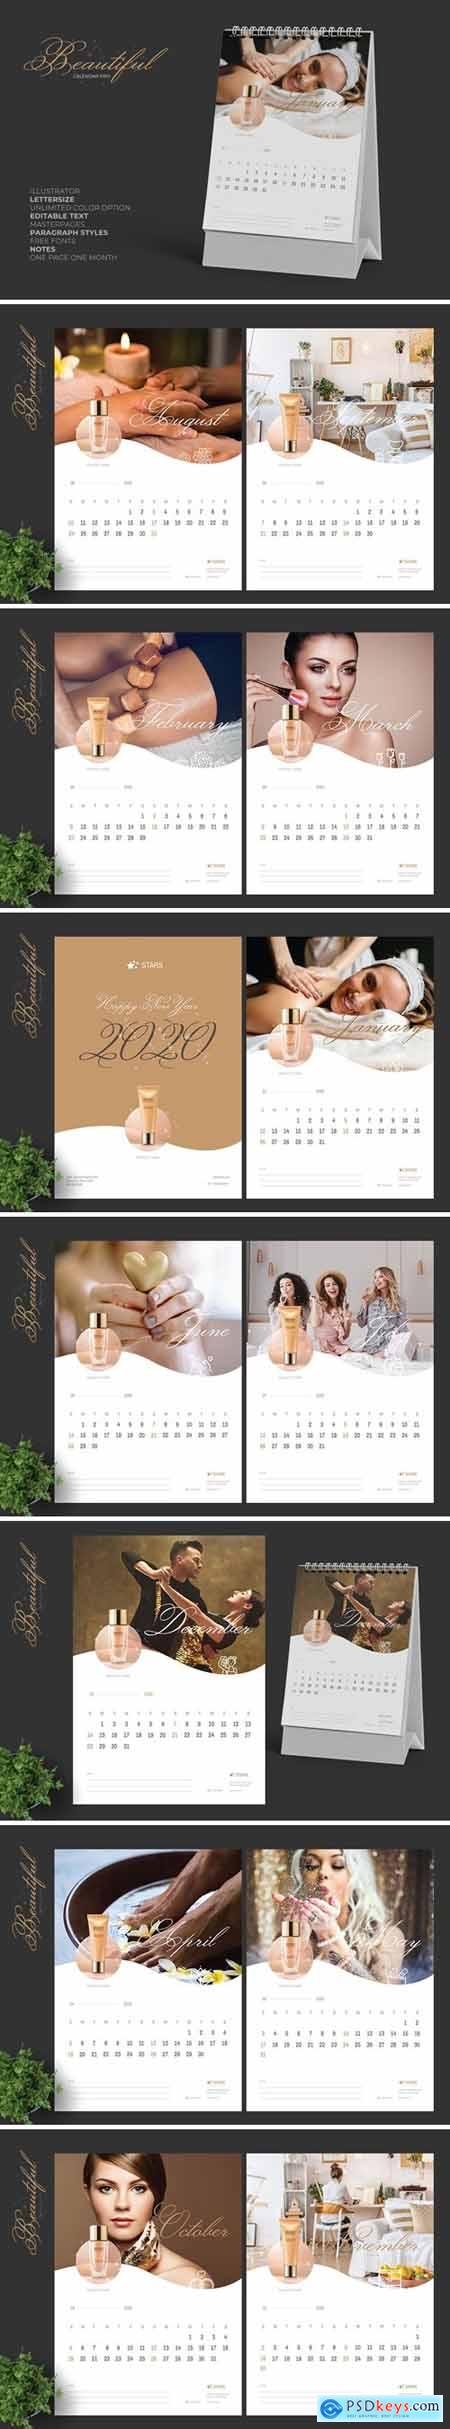 2020 Clean Creative Beauty Calender Pro